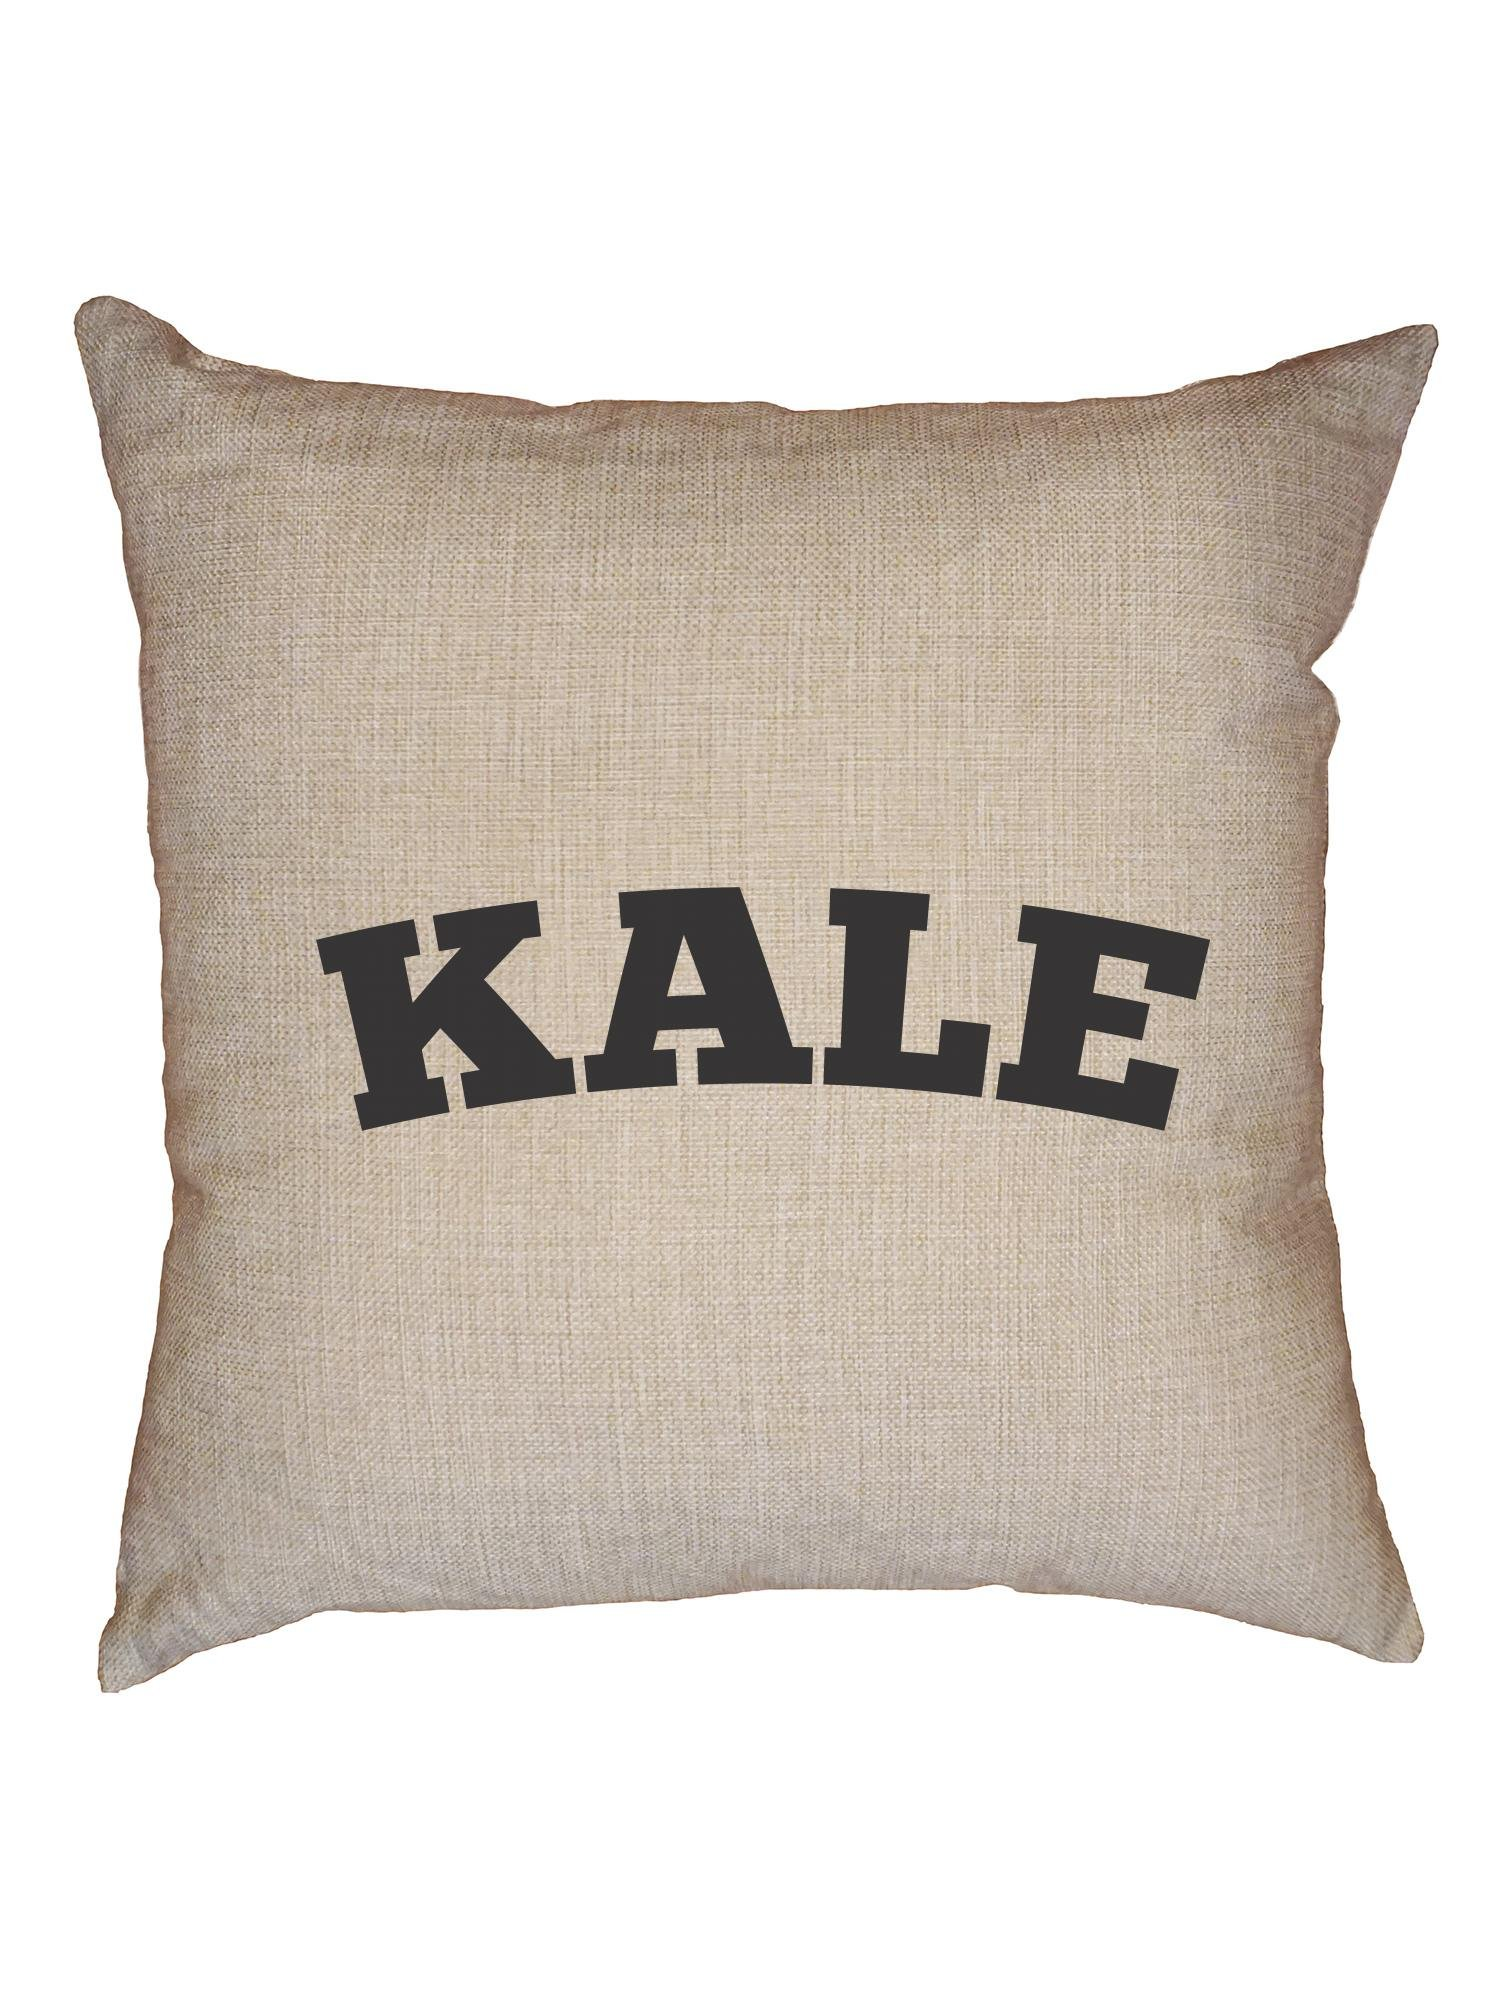 Hollywood Thread Hilarious Kale College Inspired Design Graphic Decorative Linen Throw Cushion Pillow Case with Insert